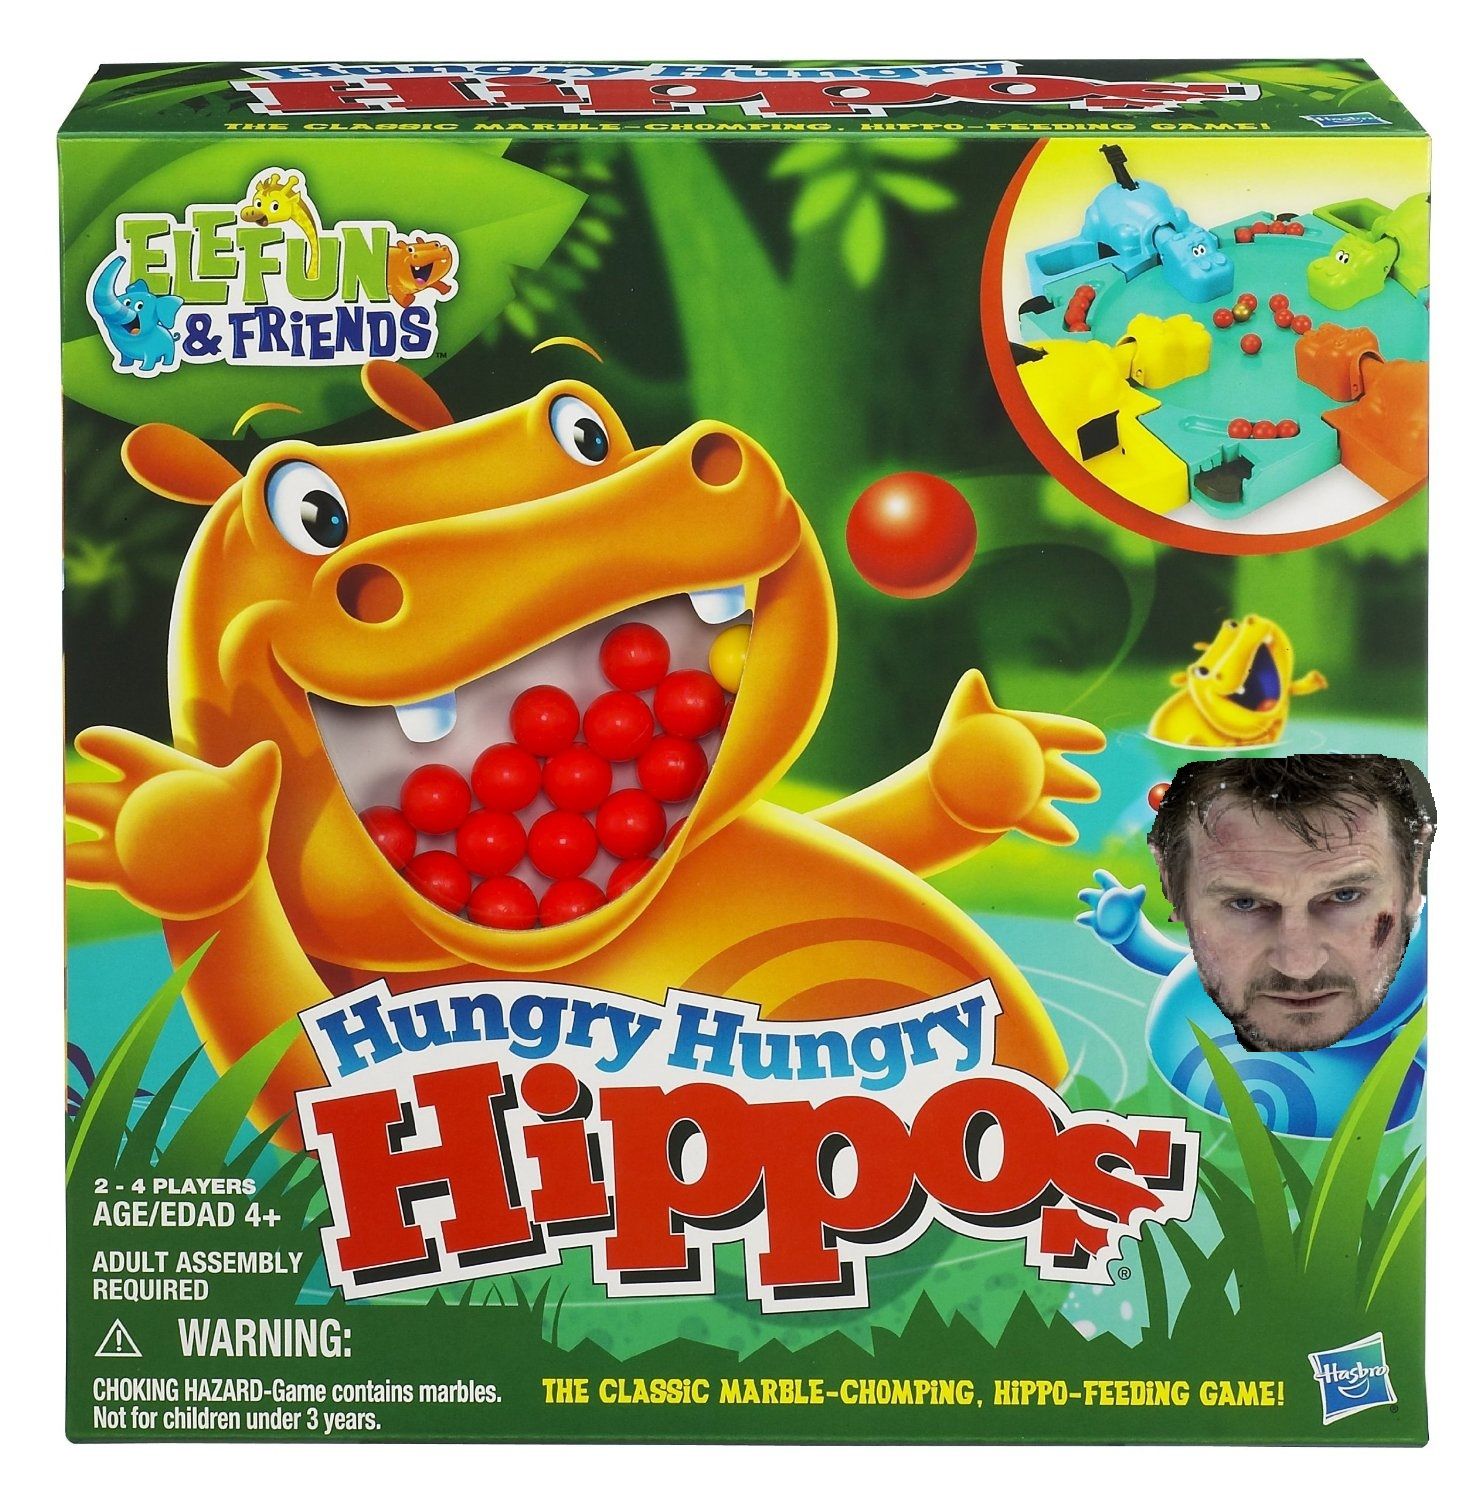 HUNGRY HUNGRY HIPPOS GREEN LIT